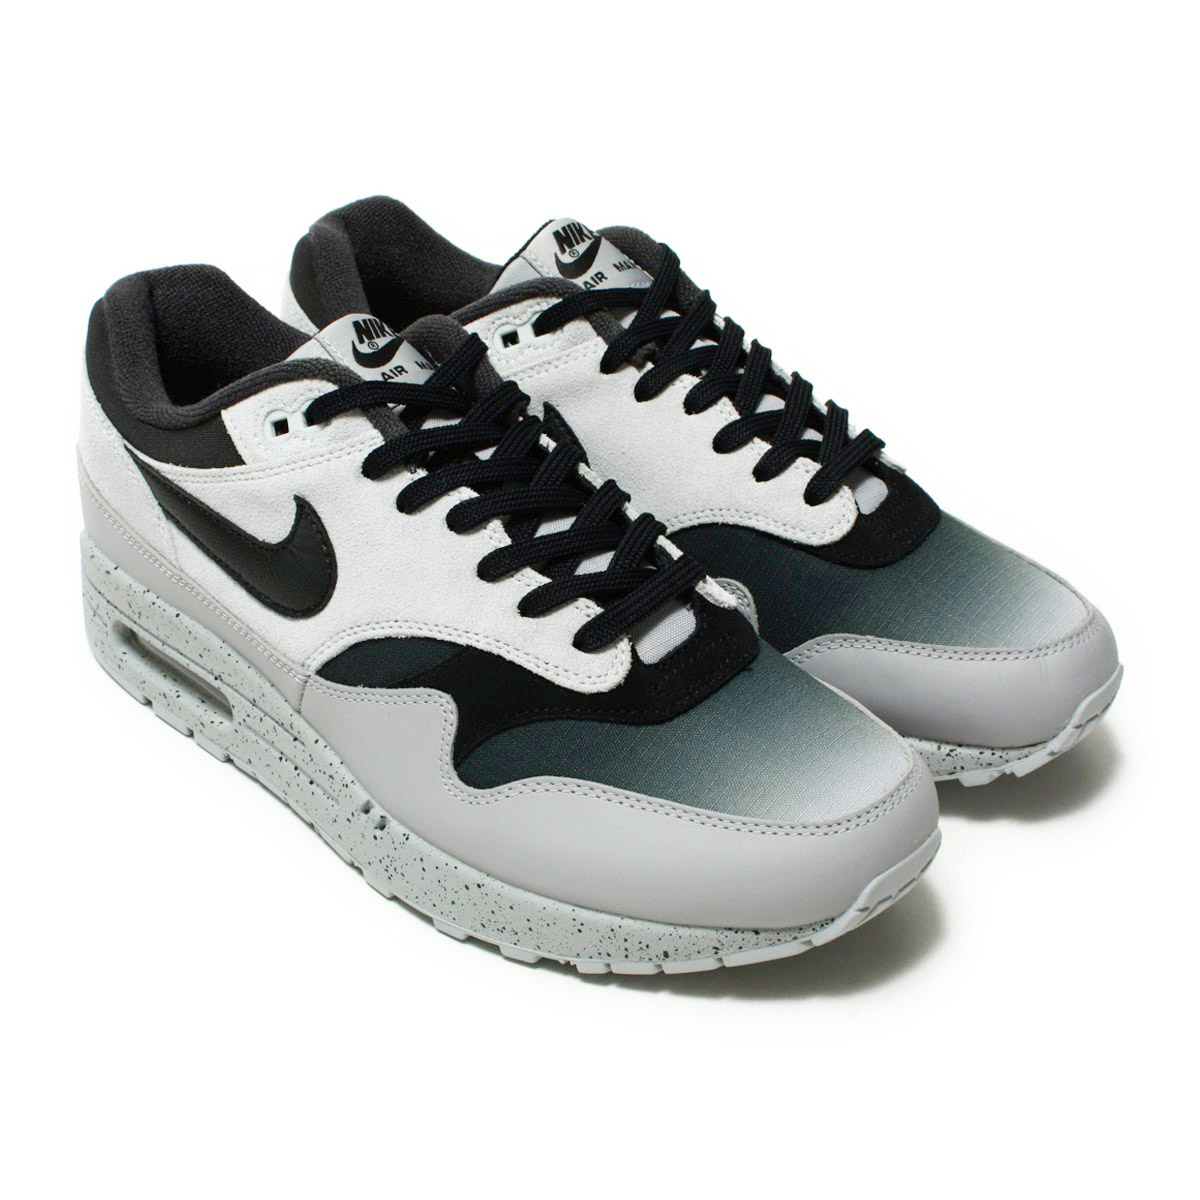 quality design f2607 b6557 NIKE AIR MAX 1 PREMIUM (Kie Ney AMAX 1 premium) PURE PLATINUM BLACK-WOLF  GREY-ANTHRACITE 18SP-I